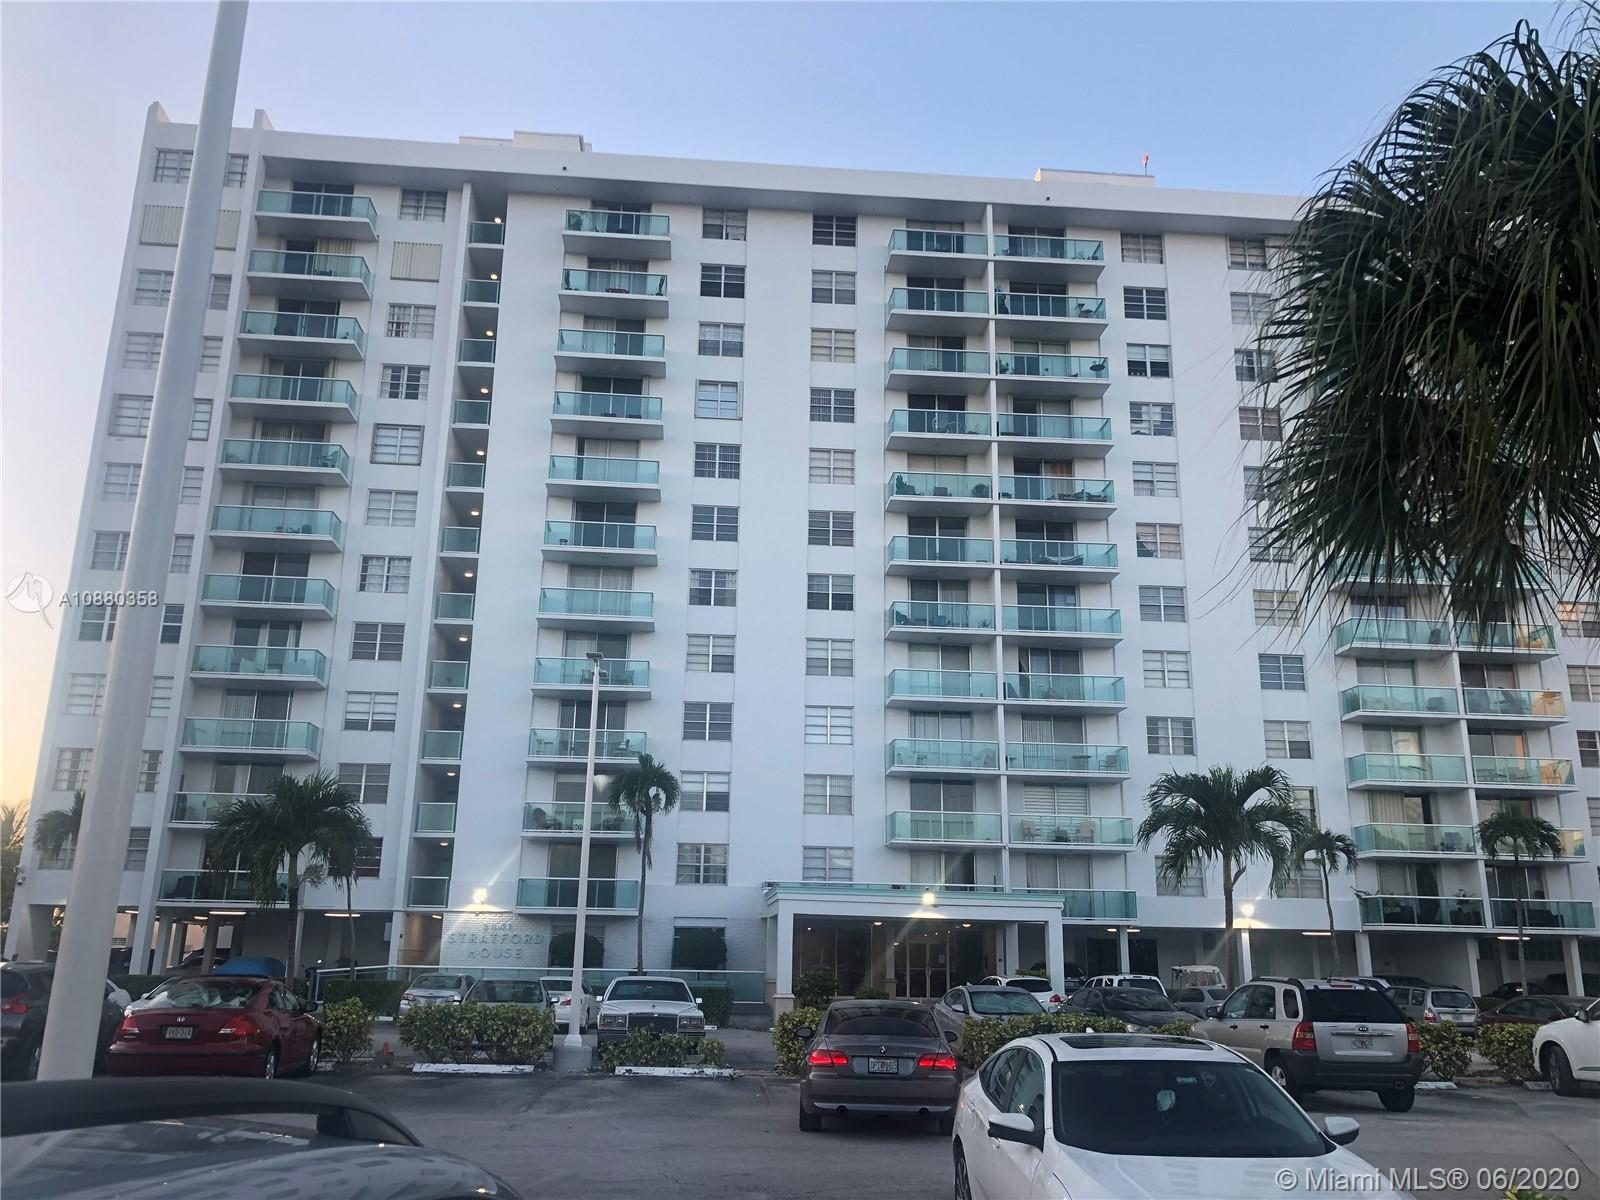 BEAUTIFUL AND PEACEFUL APARTMENT OVERLOOKING THE OLETA PARK. ONLY MINUTES AWAY FROM THE BEACH, AVENTURA MALL, THE NEW MAGNIFICENT GULFSTREAM PARK CASINO & RACING AS WELL AS FINE DINING ALL AROUND. CLOSE TO FIU NORTH. ENJOY CANOEING & BIKE RIDING AT OLETA PARK, OR AT THE POOL WITH ITS MAGNIFICENT TRANQUIL AND BEAUTIFUL VIEW OF THE WATER. KEYPAD SECURITY AND NIGHT GUARD, LAUNDRY ROOM & GREAT AMENITIES SUCH AS BILLIARD, GYM, SAUNA. GREAT LOCATION!!!